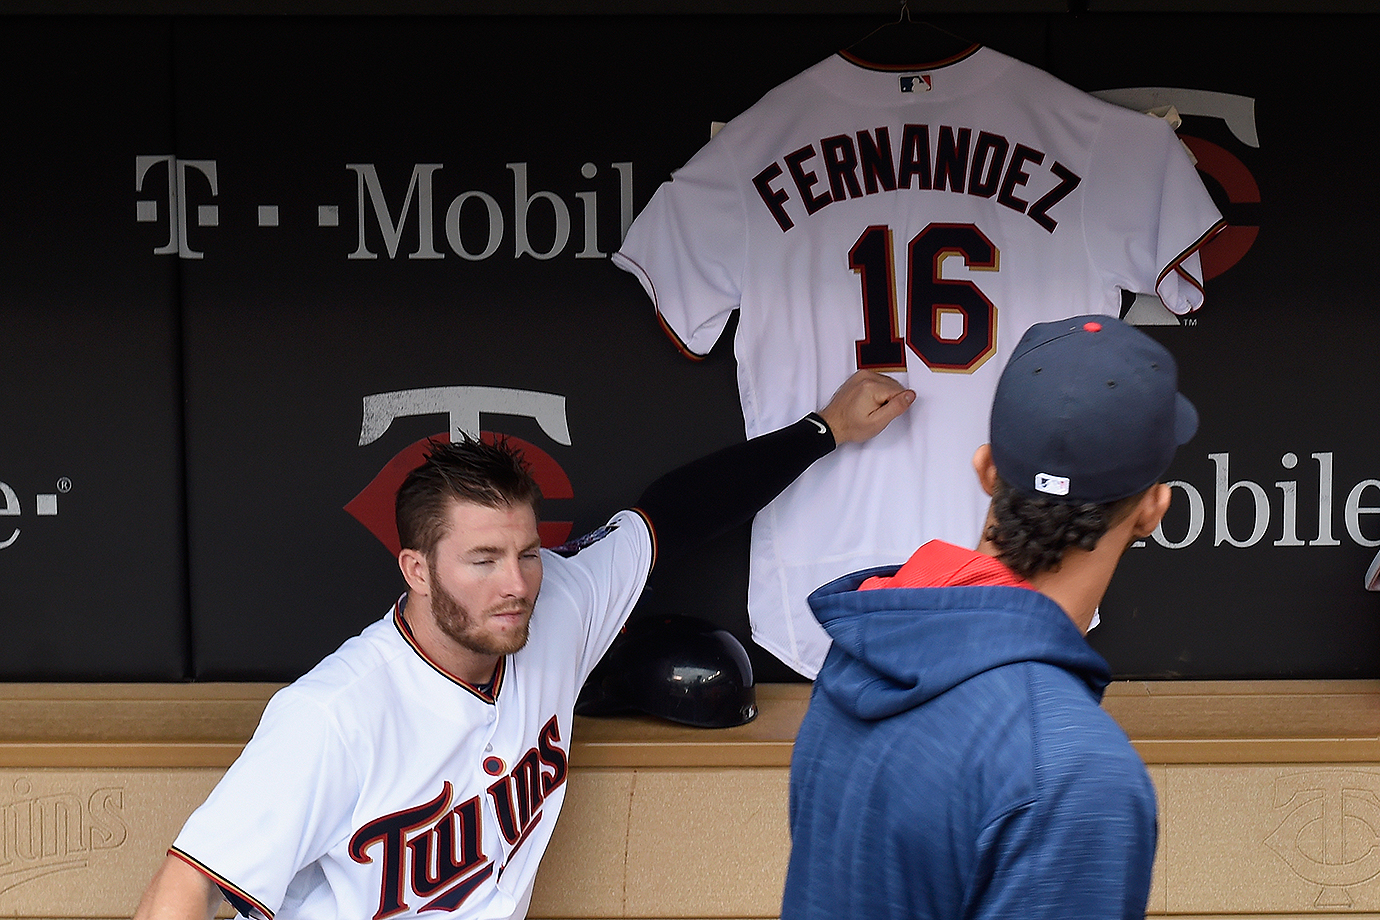 Minnesota Twins outfielder Robbie Grossman touches a jersey hung in the dugout in remembrance of Jose Fernandez during a game against the Seattle Mariners on Sunday, Sept. 25, 2016 at Target Field in Minneapolis, Minn.